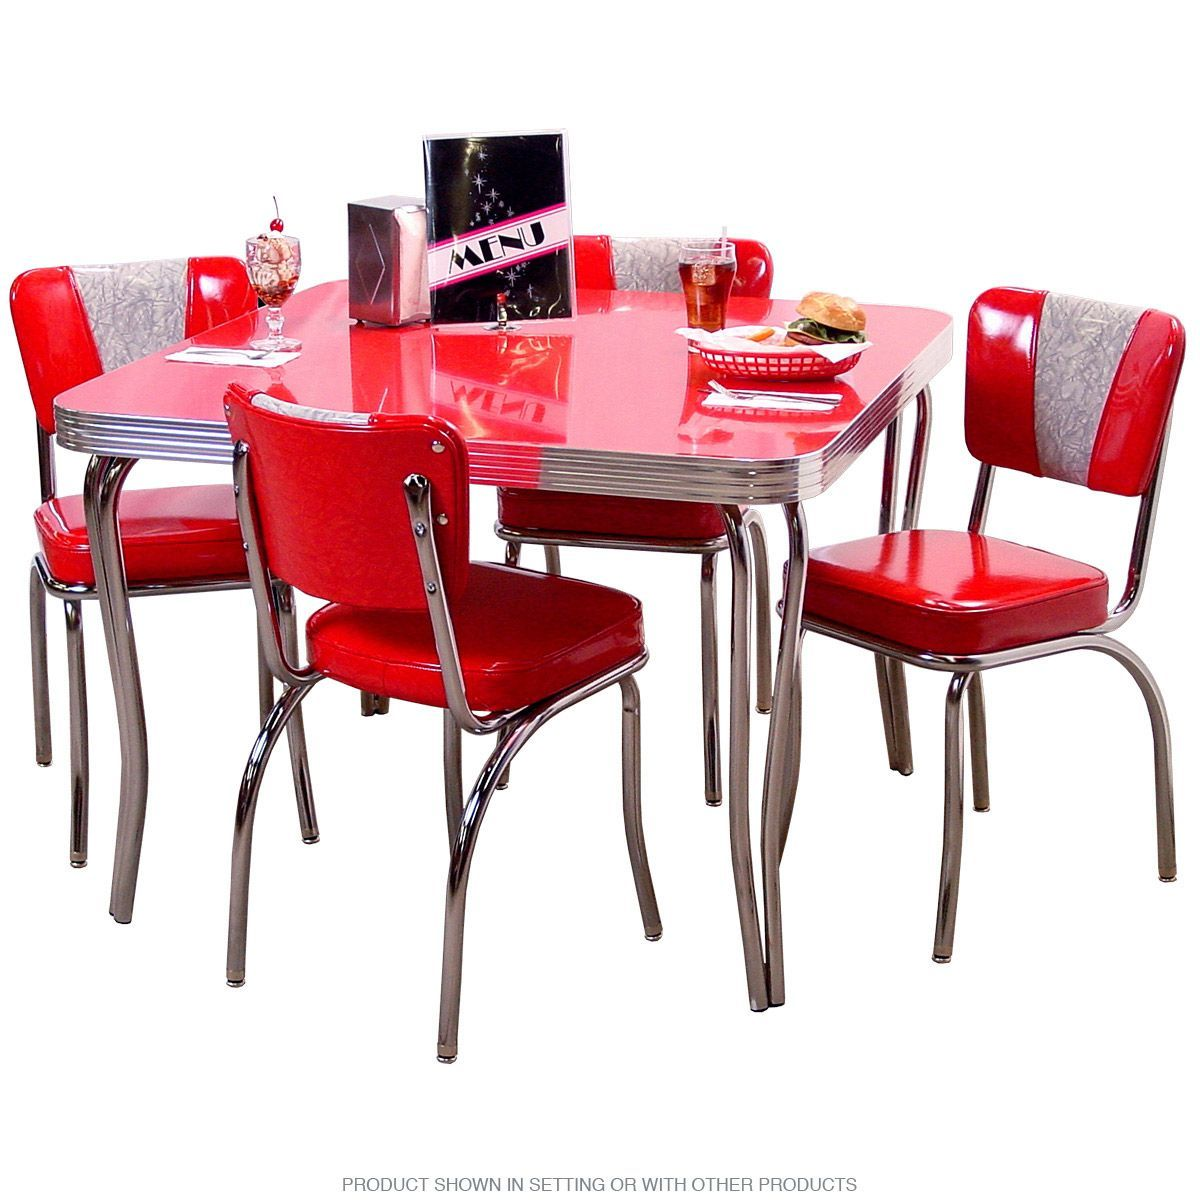 Groovy Retro Dinette Set With Square Table History In 2019 Home Interior And Landscaping Mentranervesignezvosmurscom